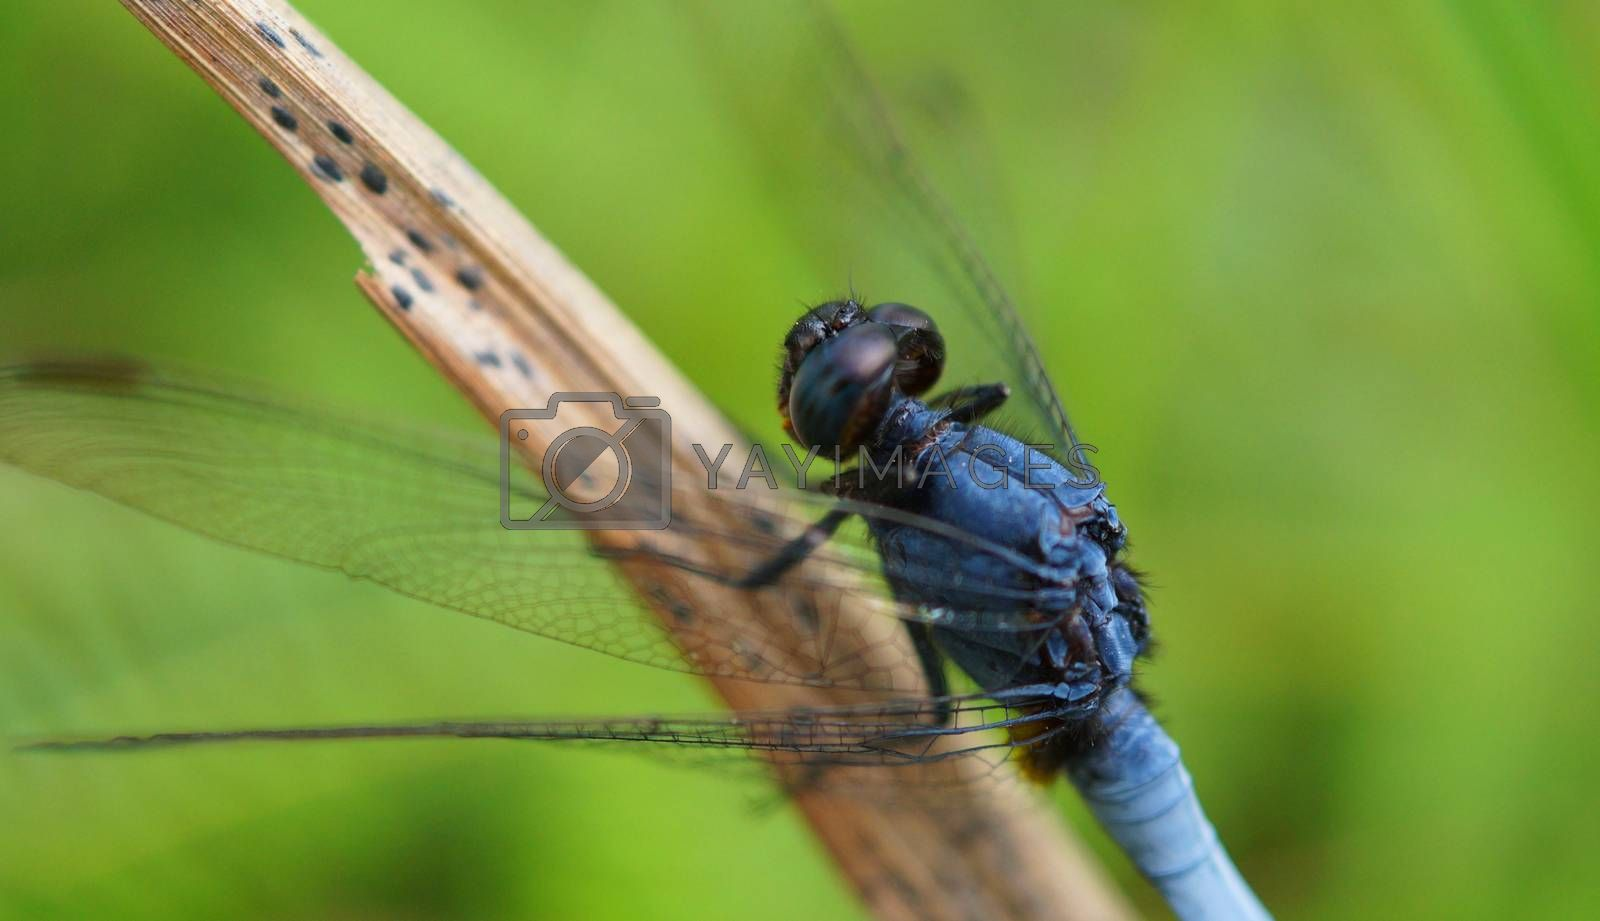 beautiful dragon-fly sits on the leaf of a tree, selective focus image.